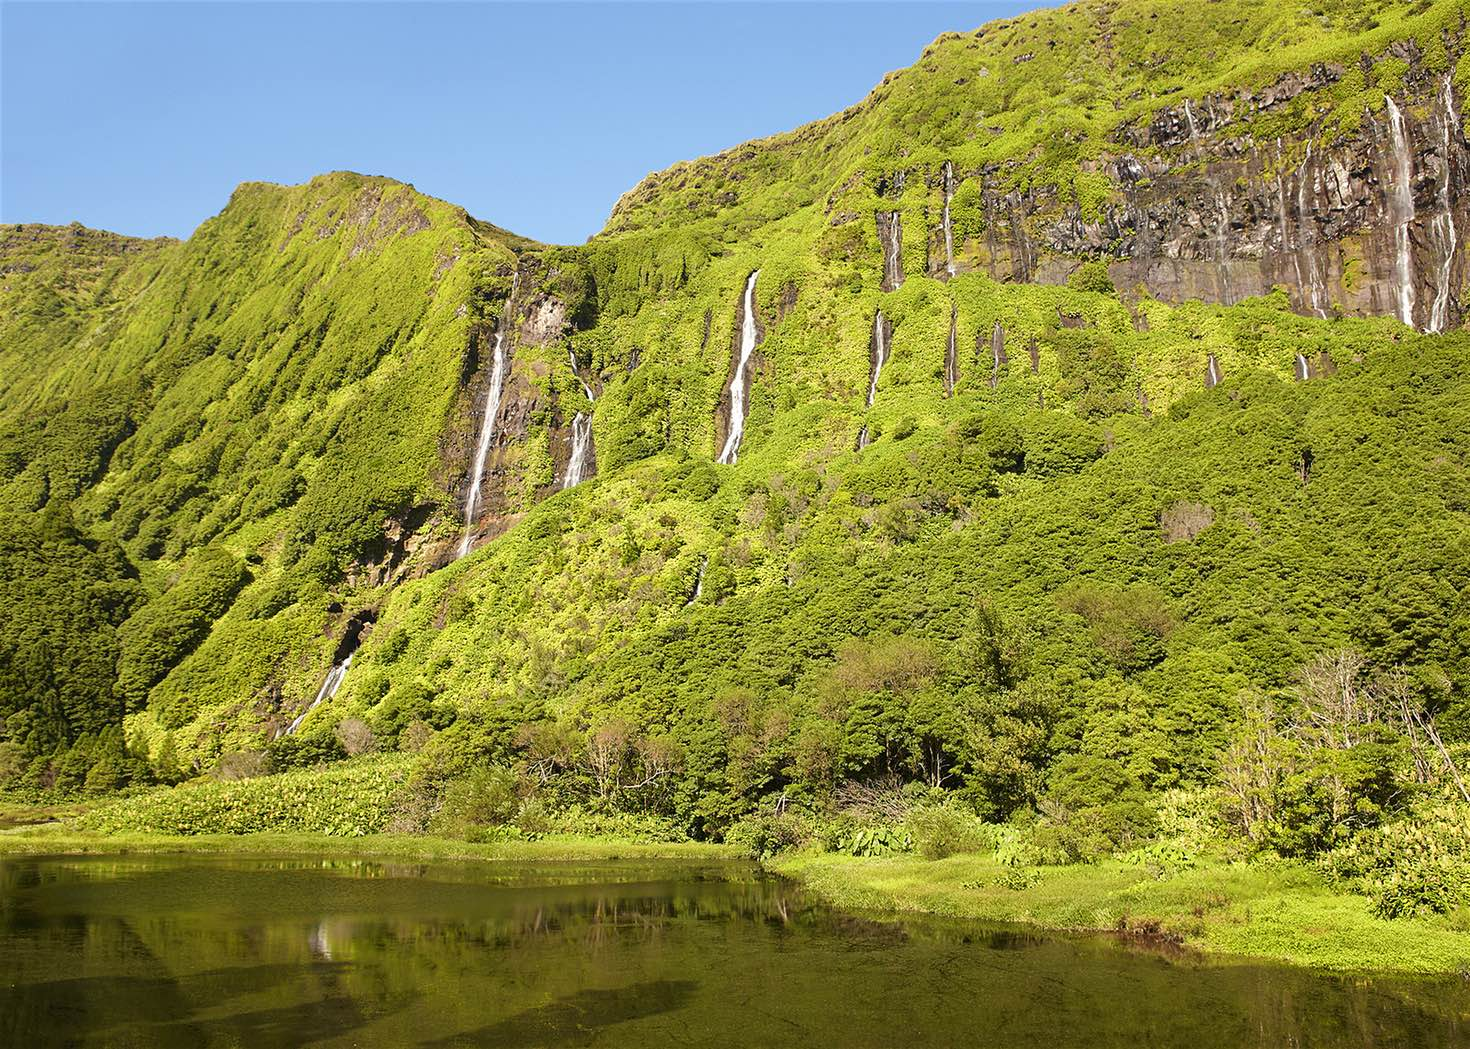 Green cliffs and waterfalls in the Azores